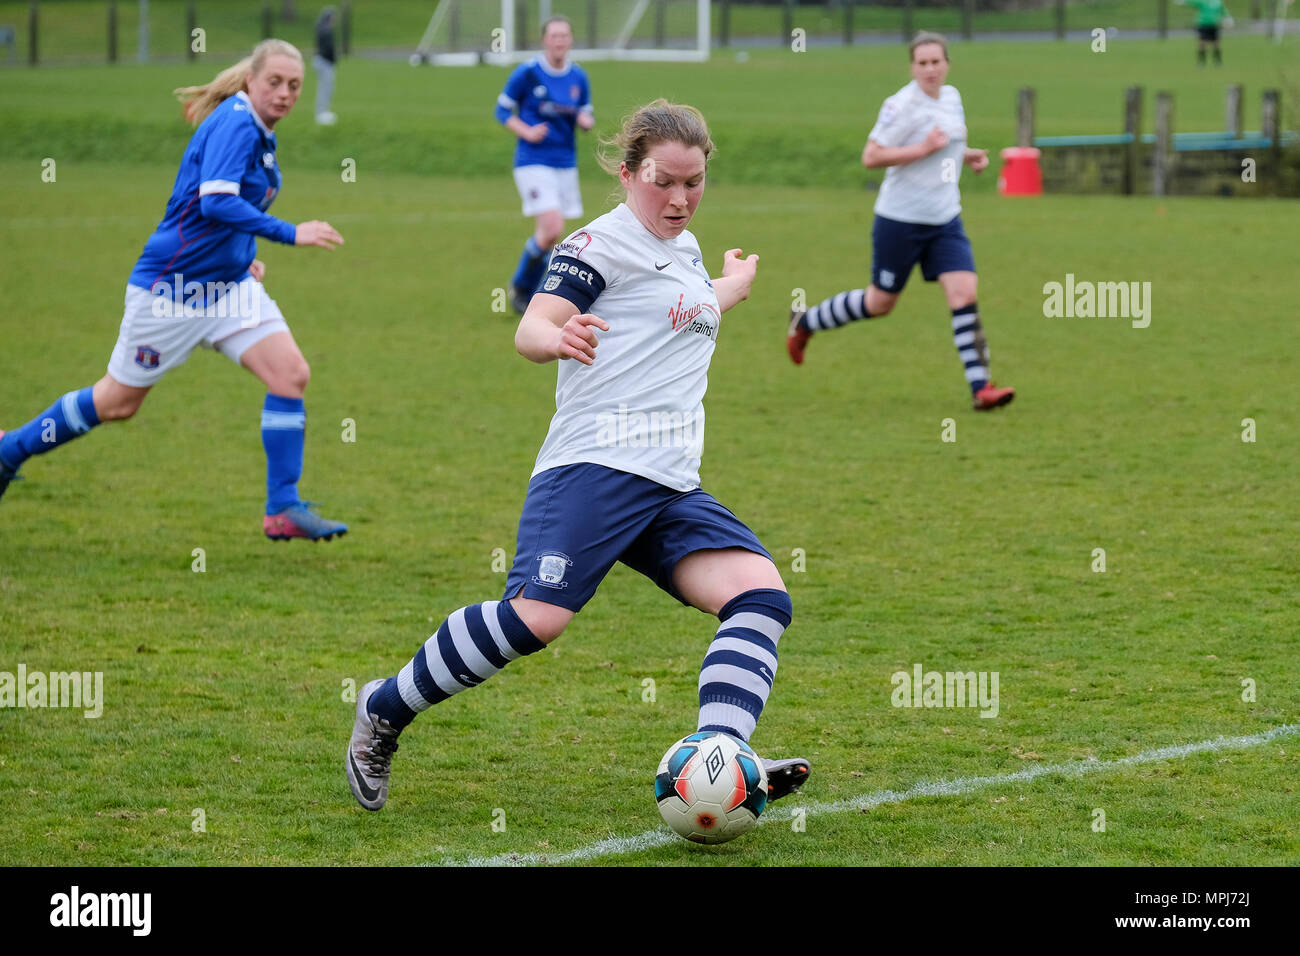 Female soccer in the North West Women's Regional League as Preston North End Ladies take on Carlise - Stock Image